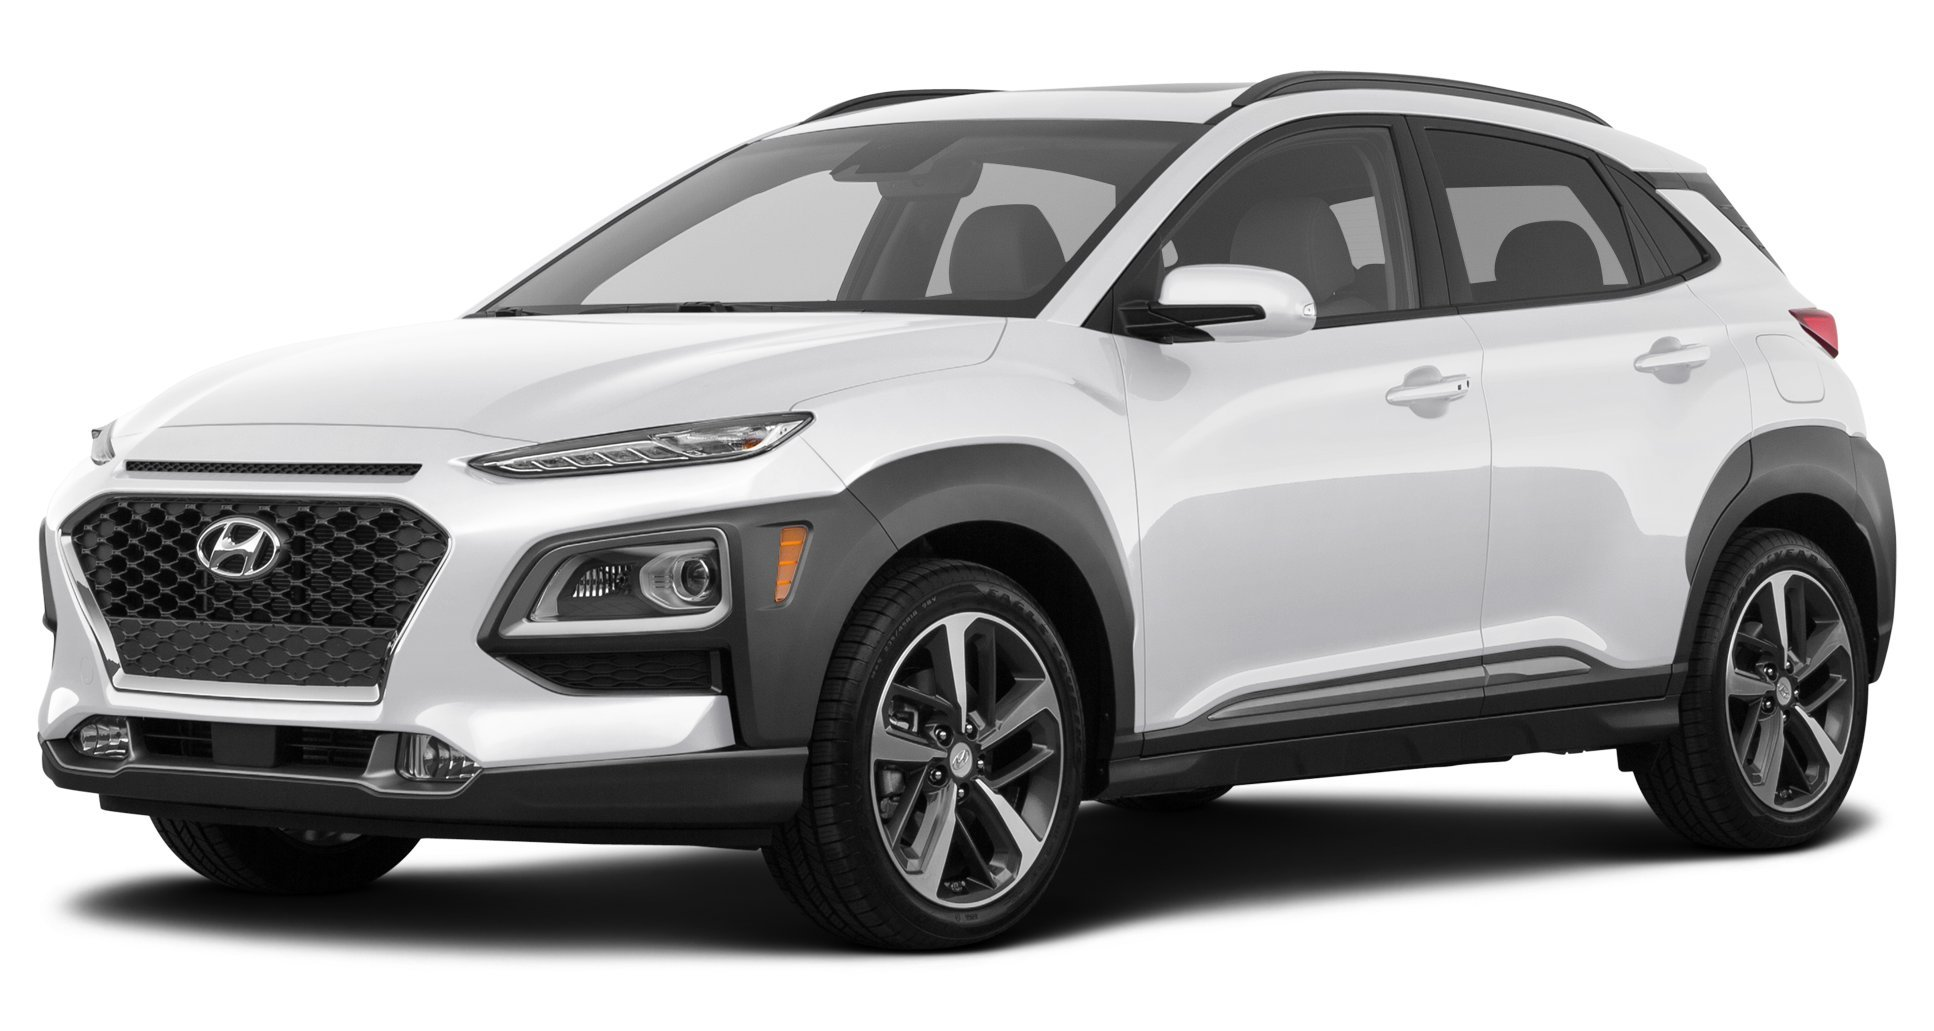 2018 hyundai kona reviews images and specs. Black Bedroom Furniture Sets. Home Design Ideas